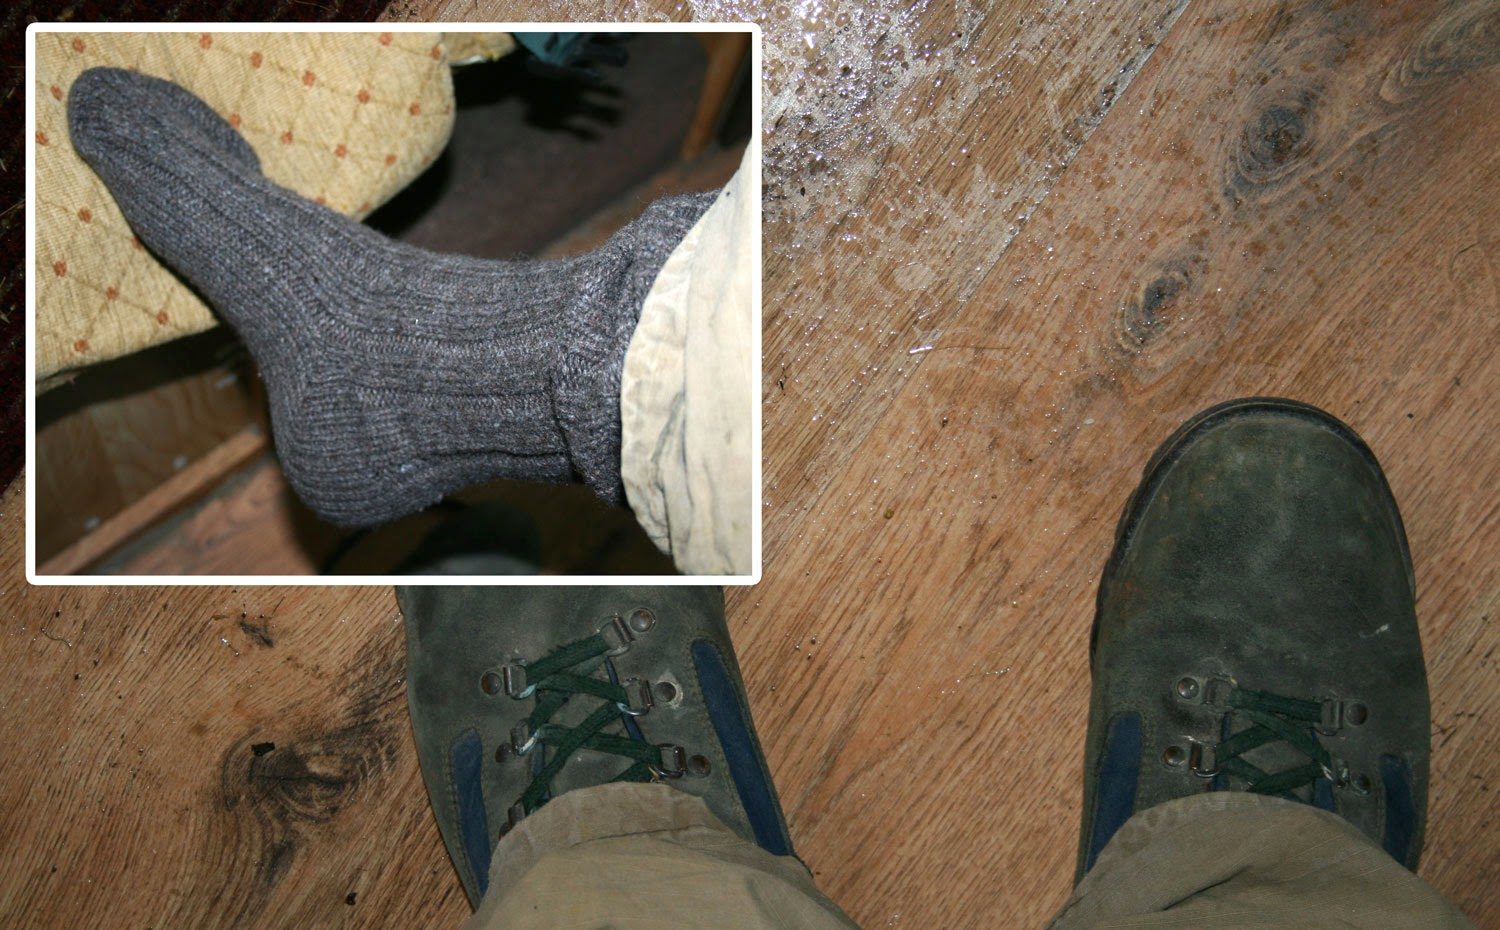 Heavy socks and walking boots, not sandals :(